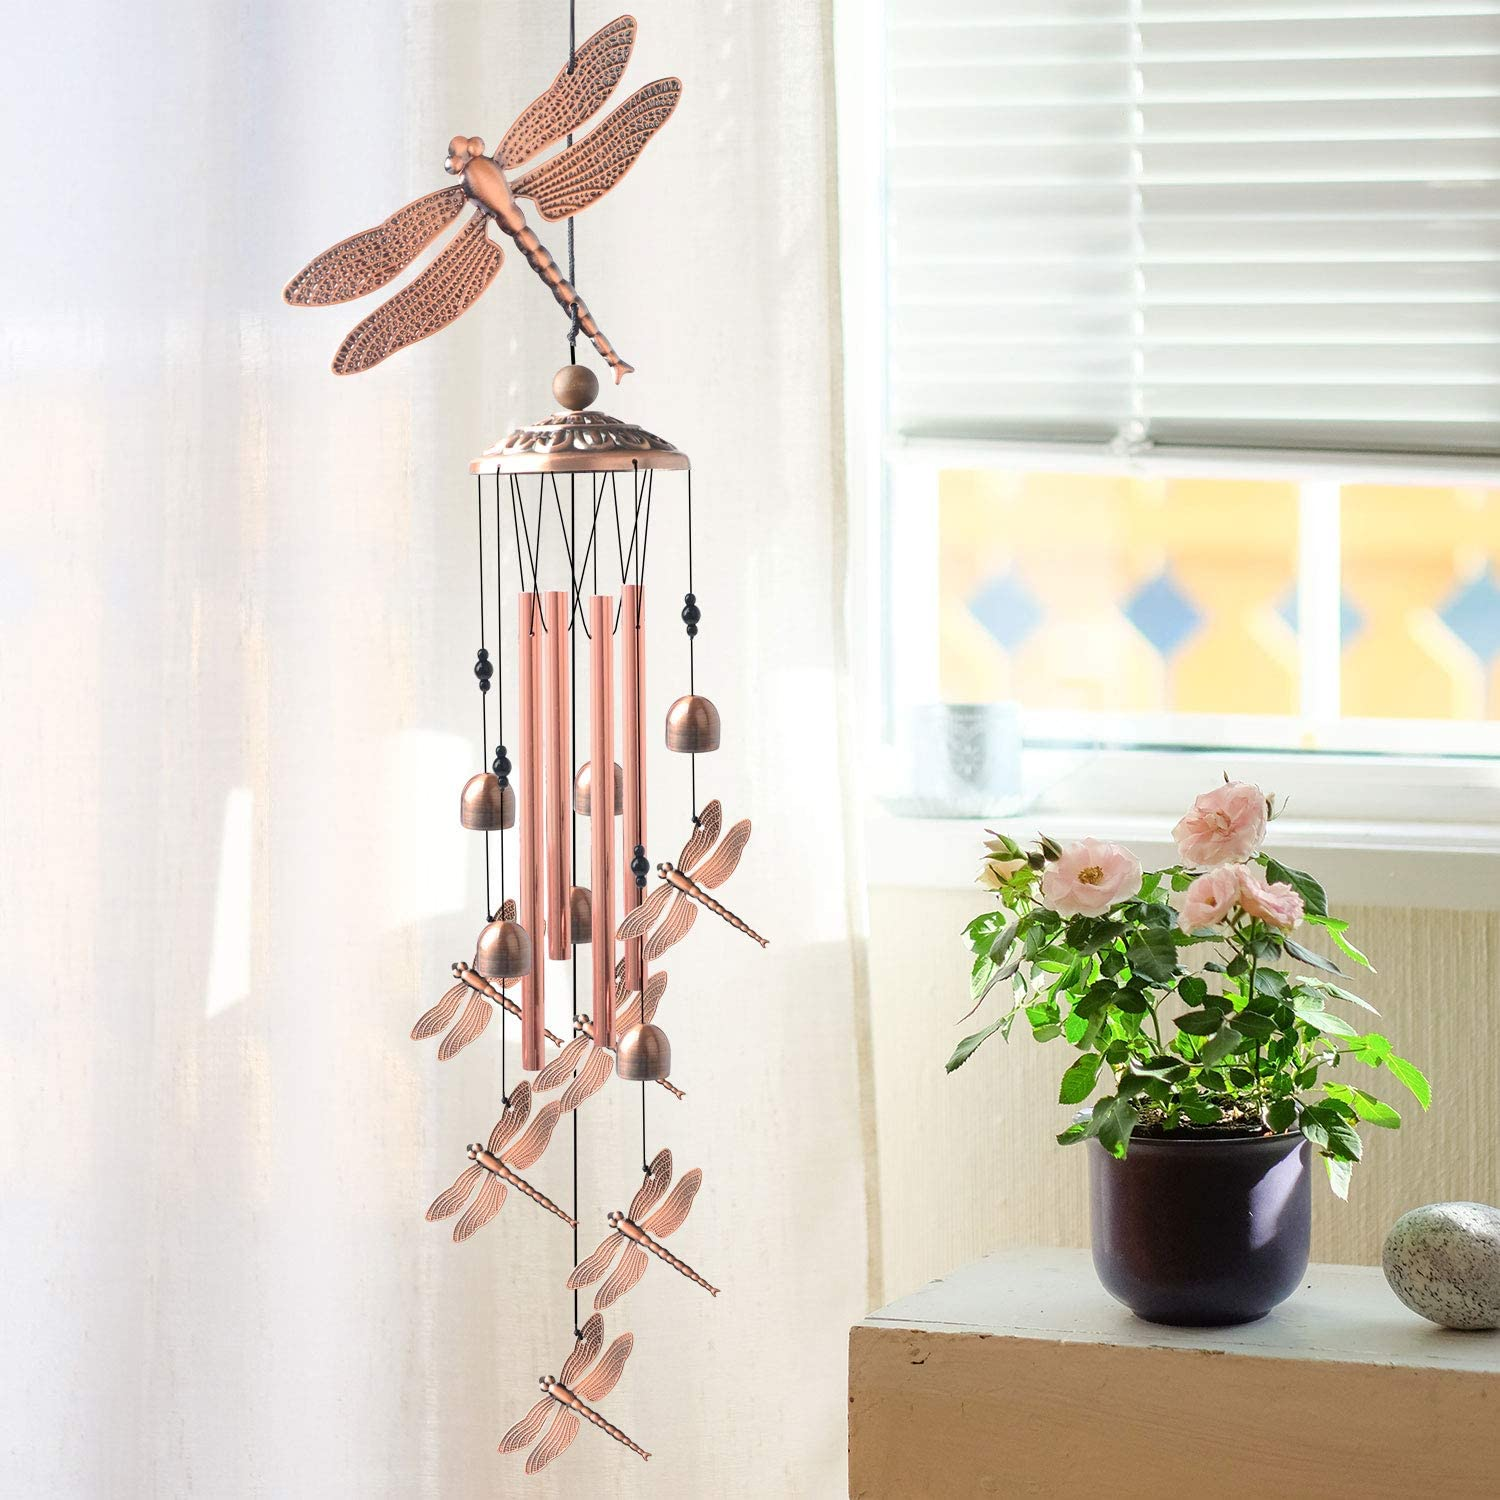 dragonfly-gifts-wind-chime